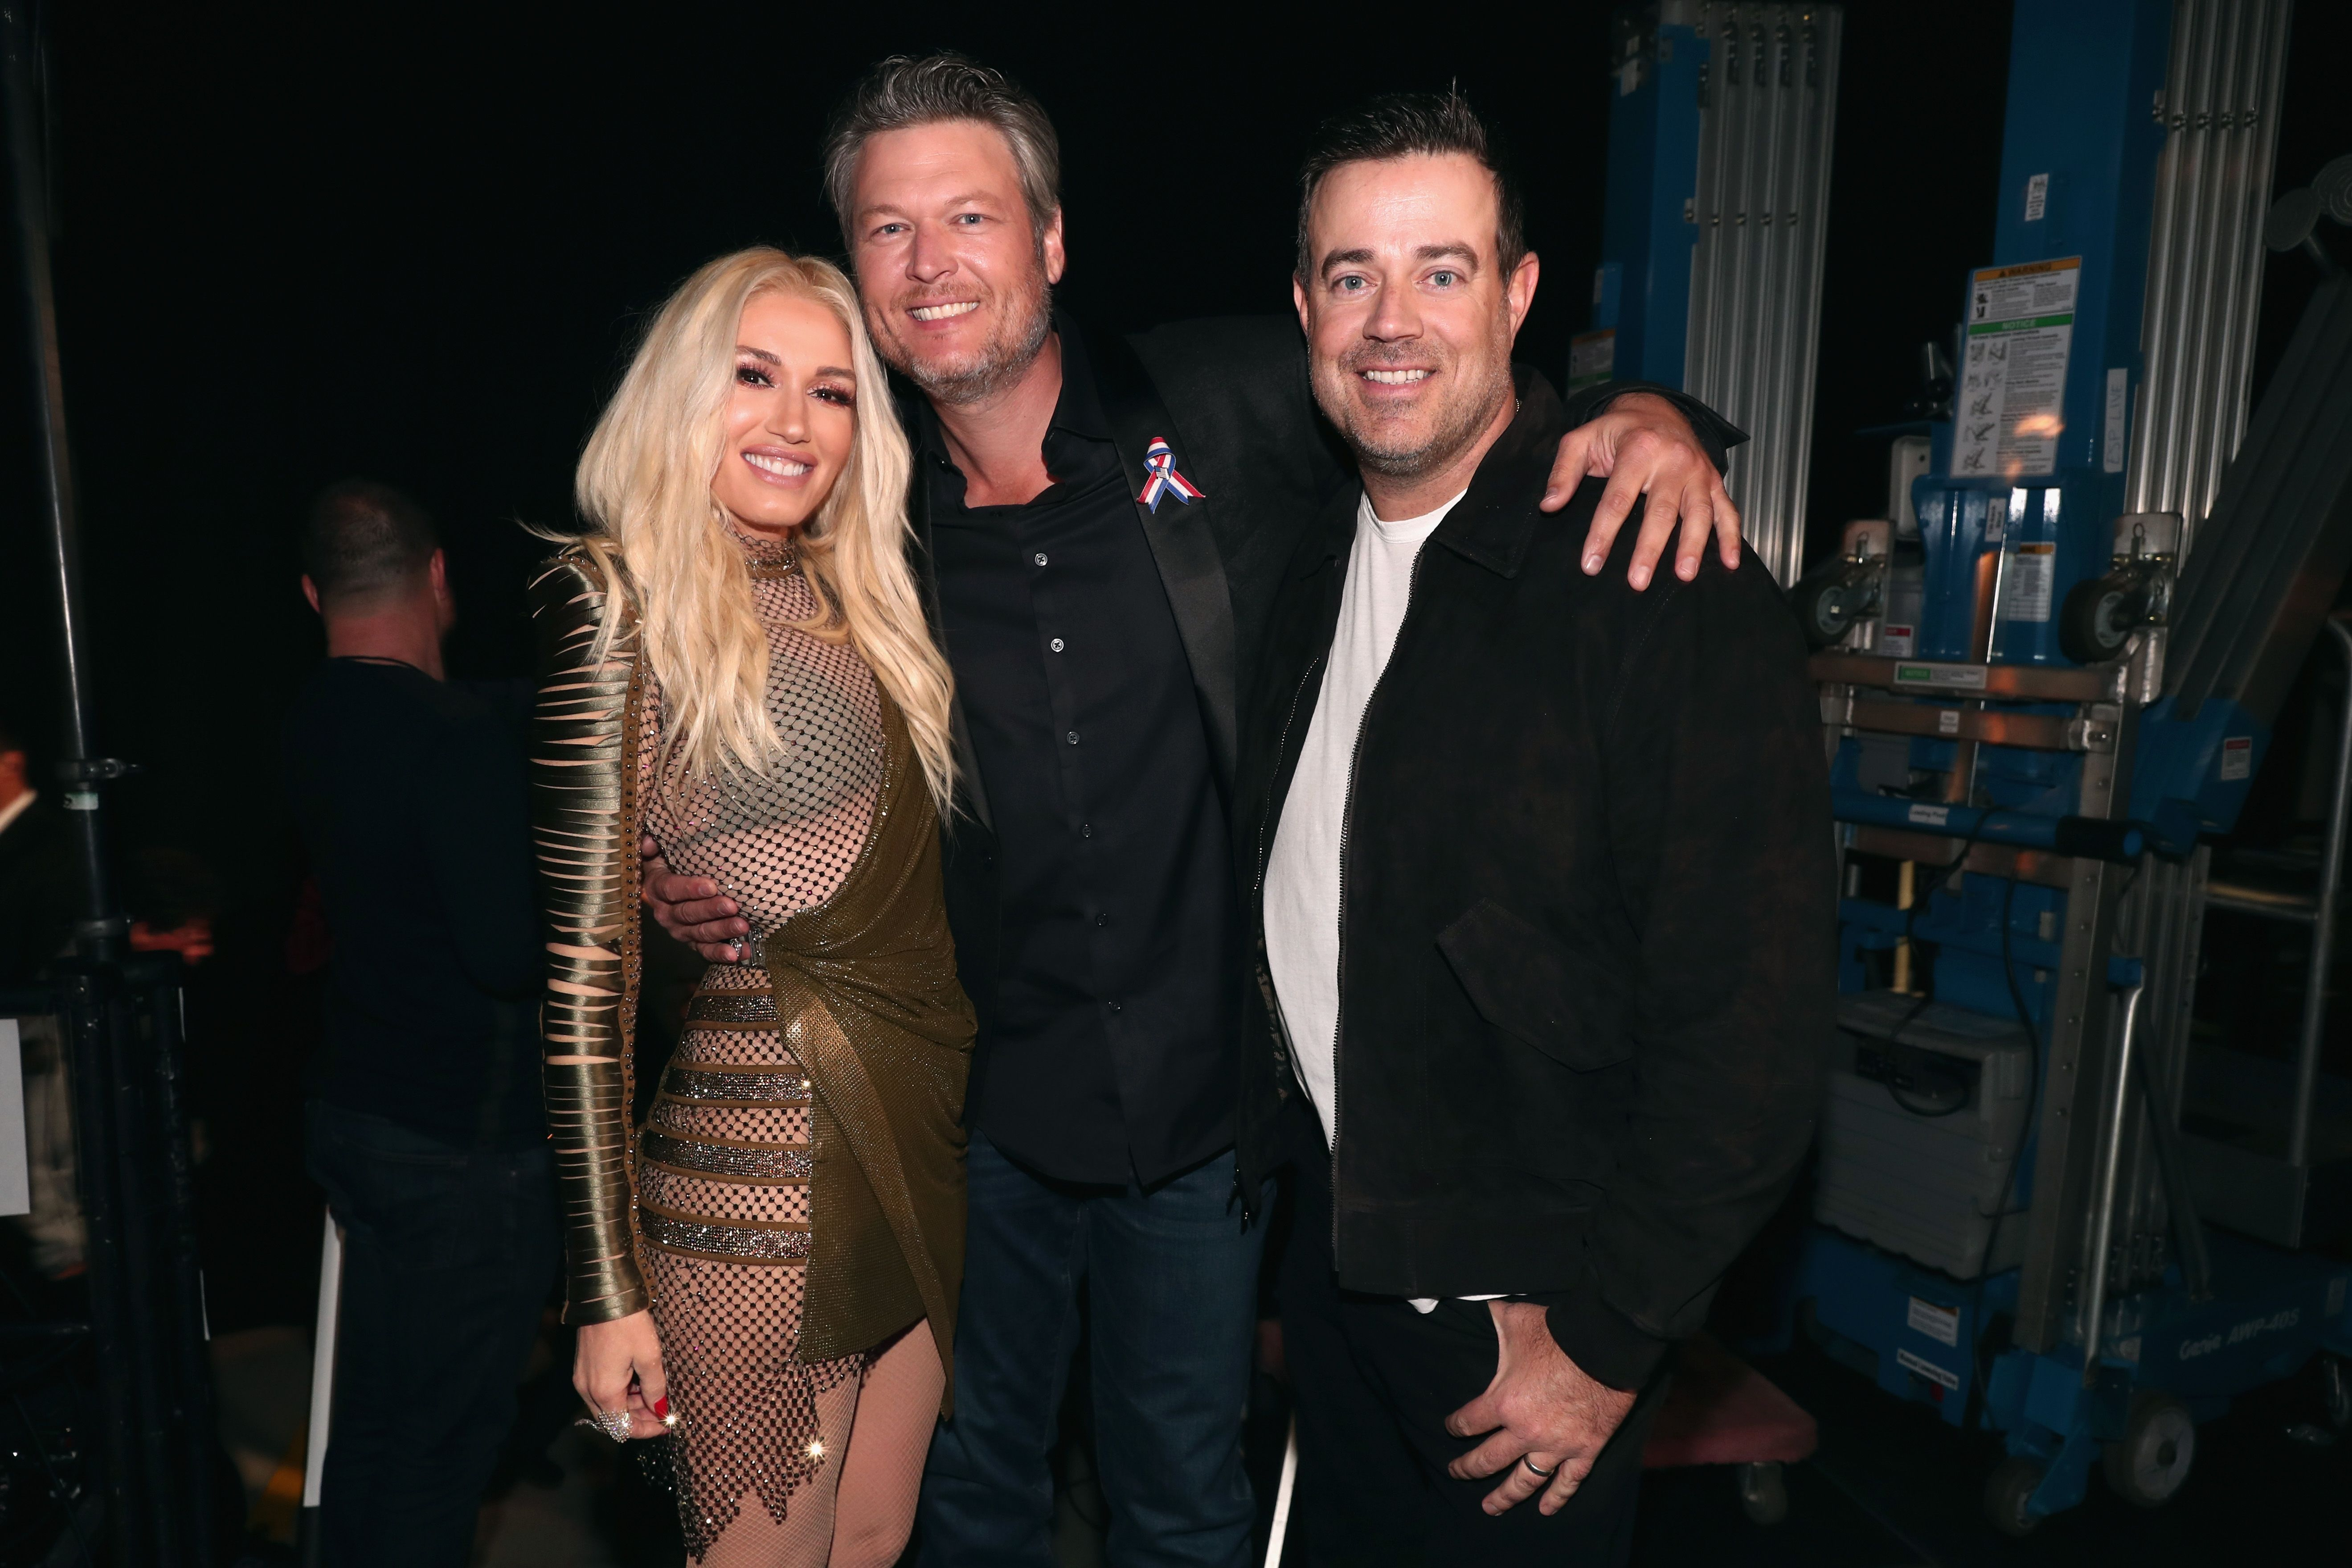 'Today' Star Carson Daly Spills Why He Told Gwen Stefani Not to Get Involved With Blake Shelton